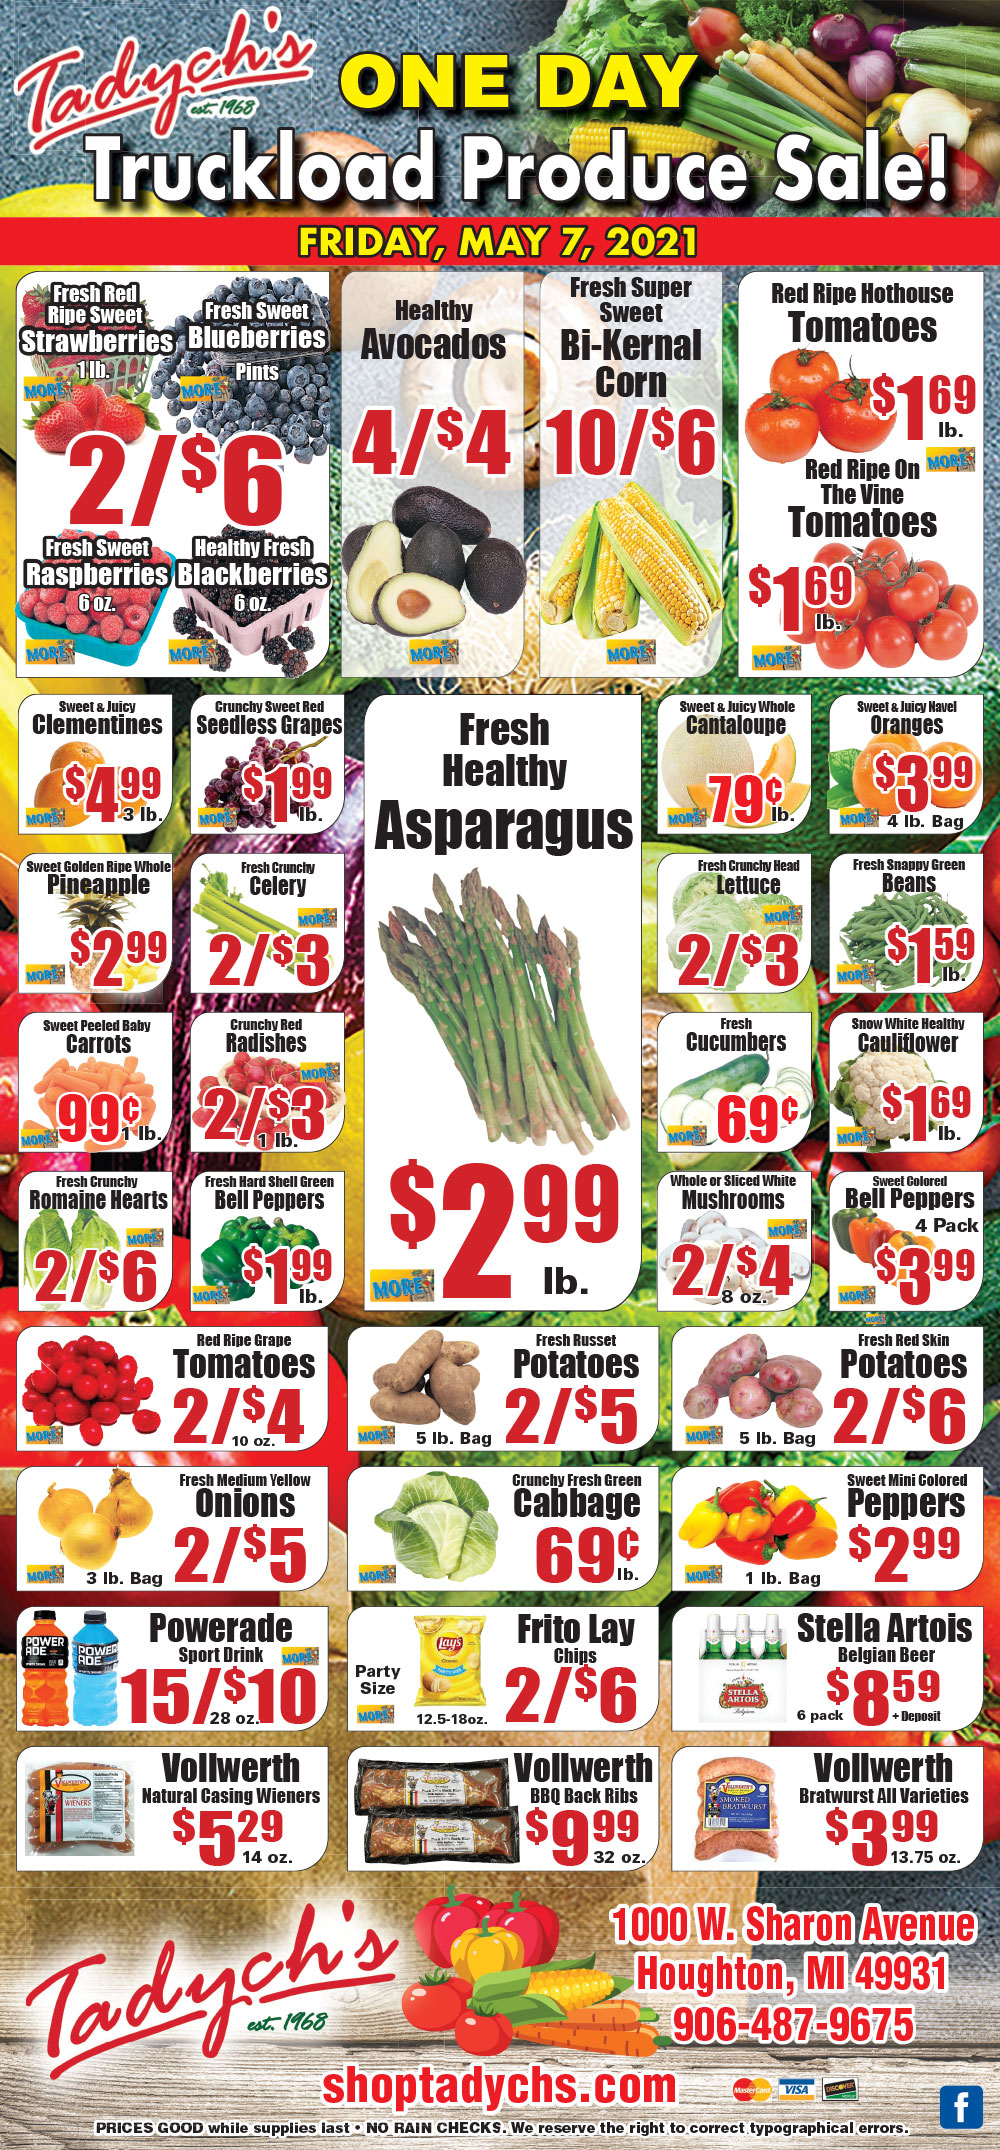 Houghton Truckload Produce Sale